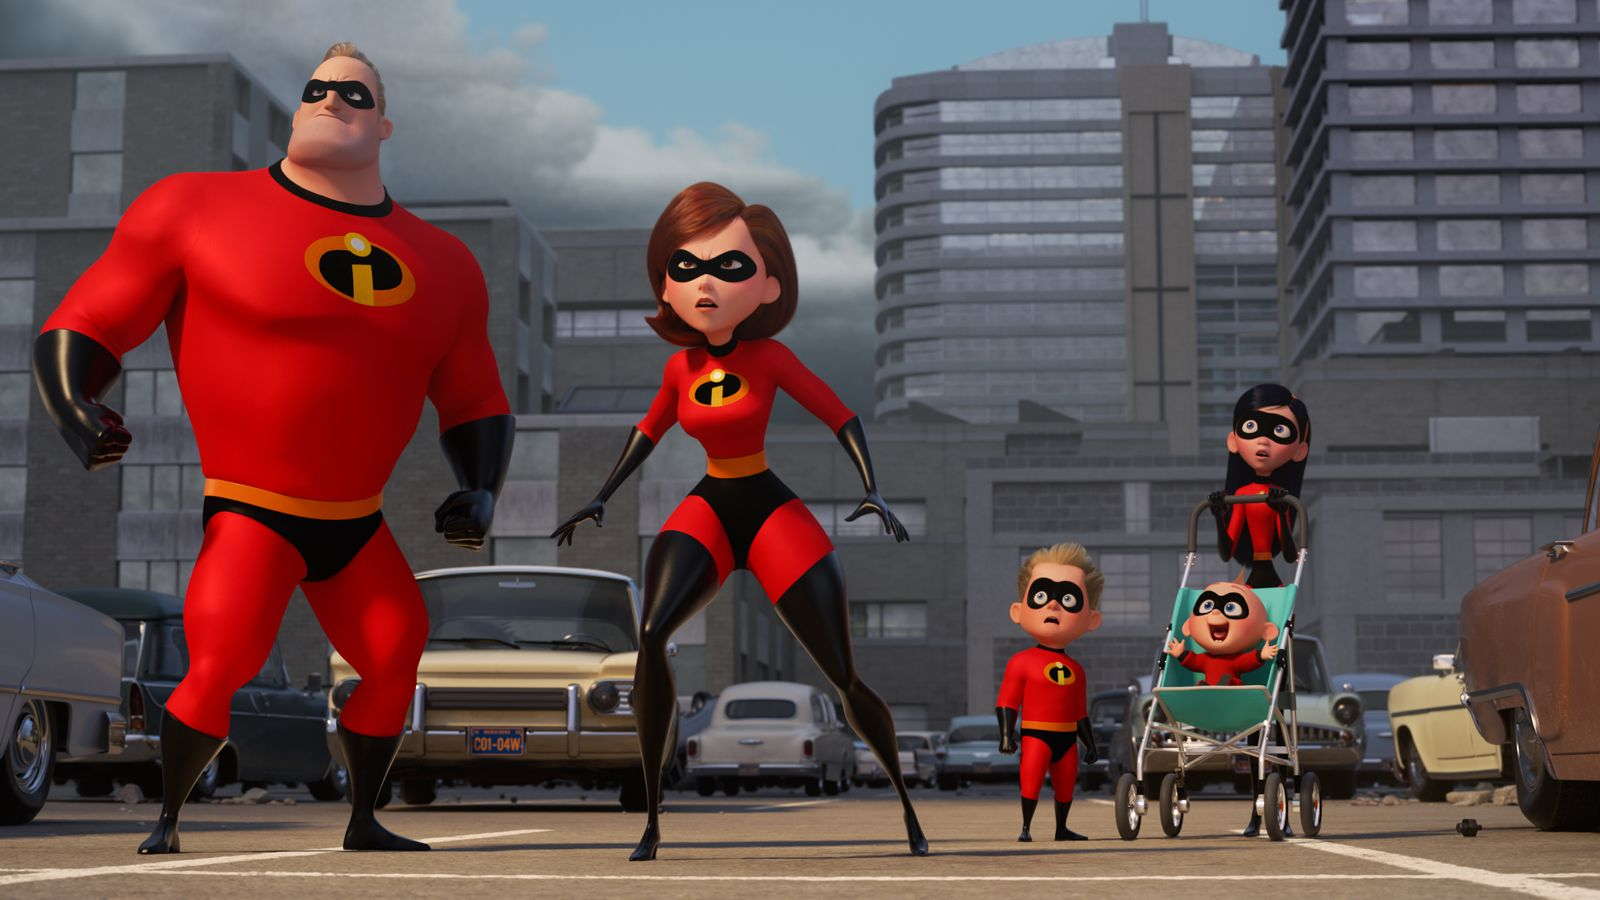 US cinemas issue seizure warnings for Incredibles 2